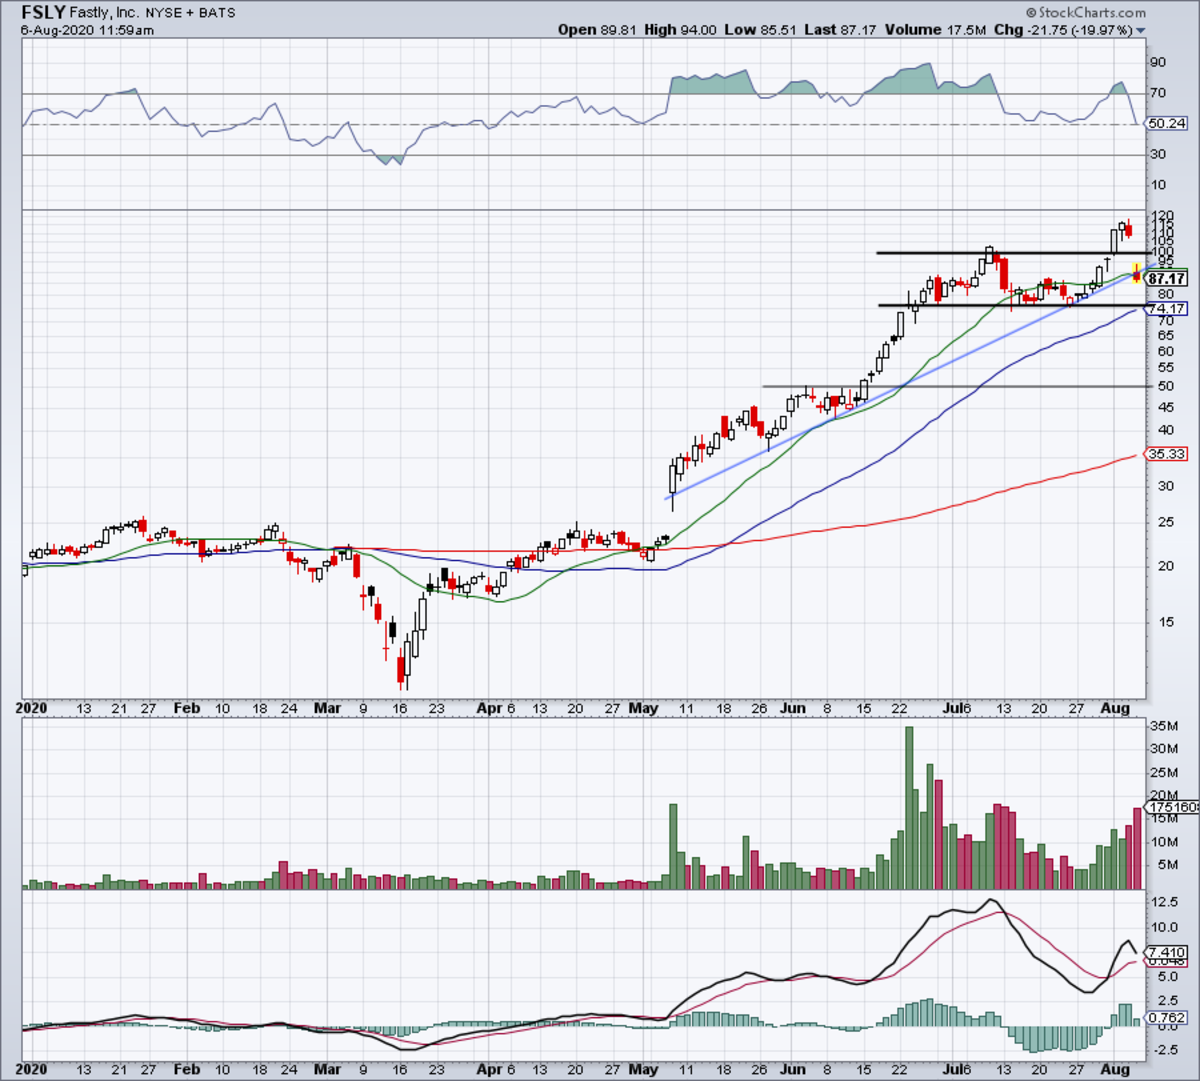 Daily chart of Fastly stock.